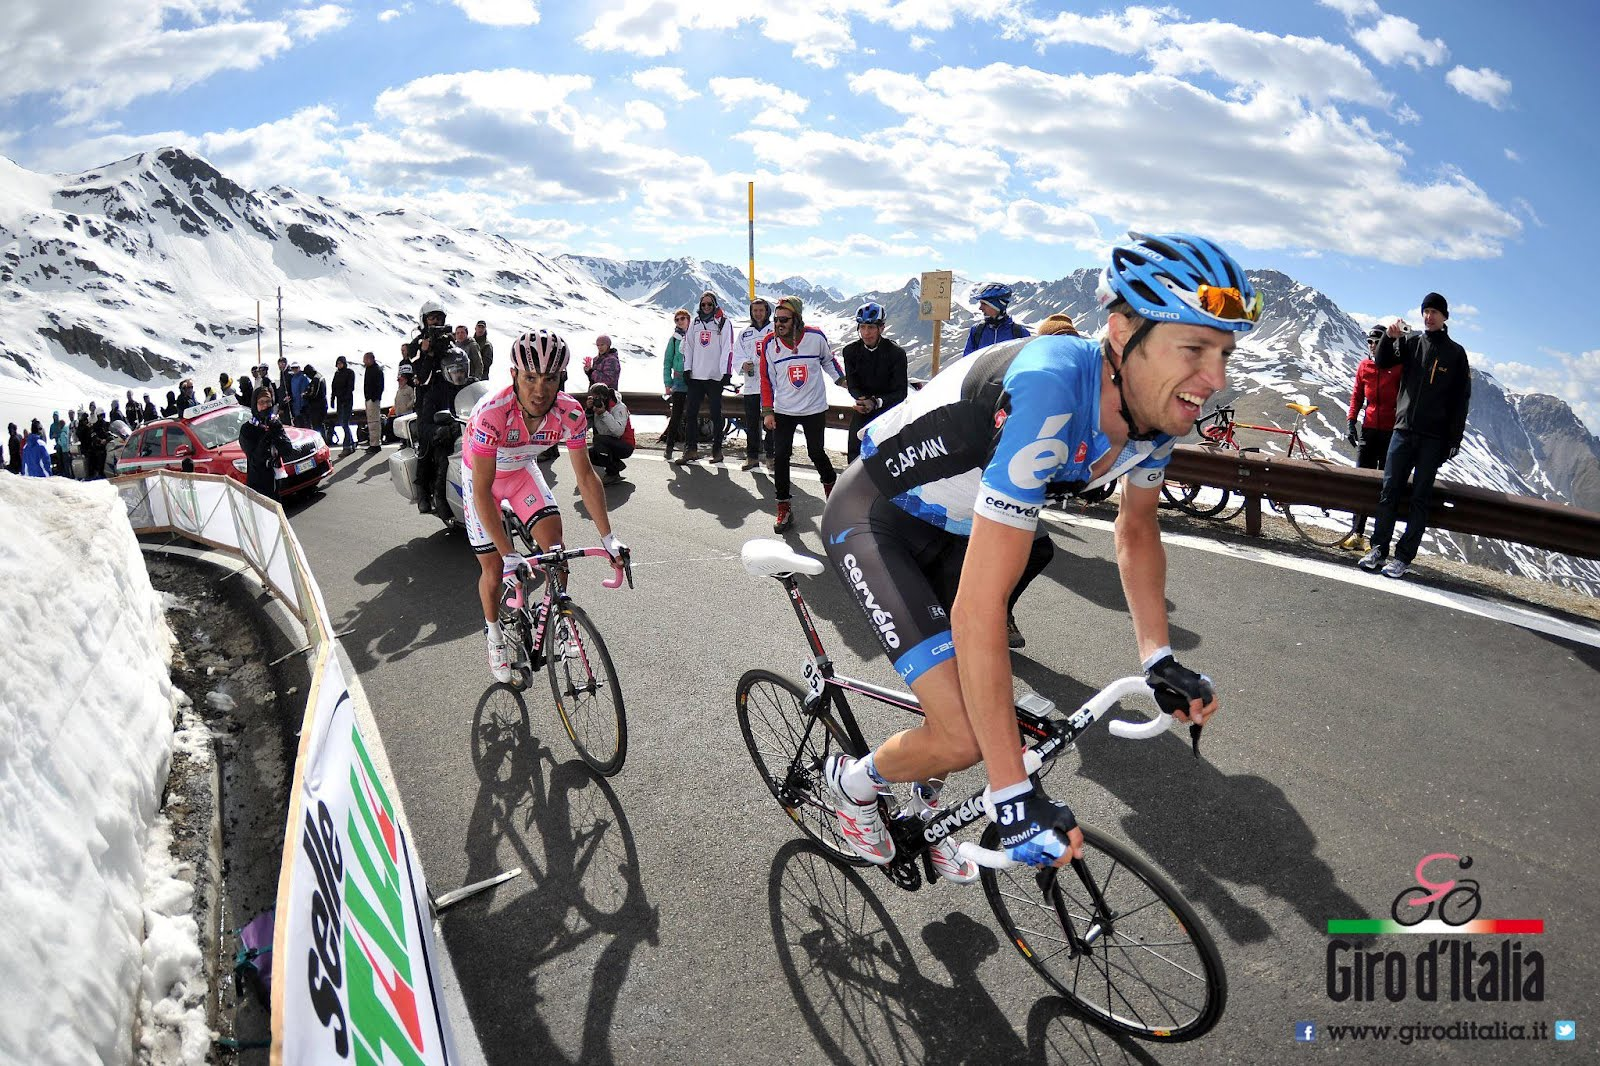 ITALIAN CYCLING JOURNAL: How to Improve the Giro d'Italia?